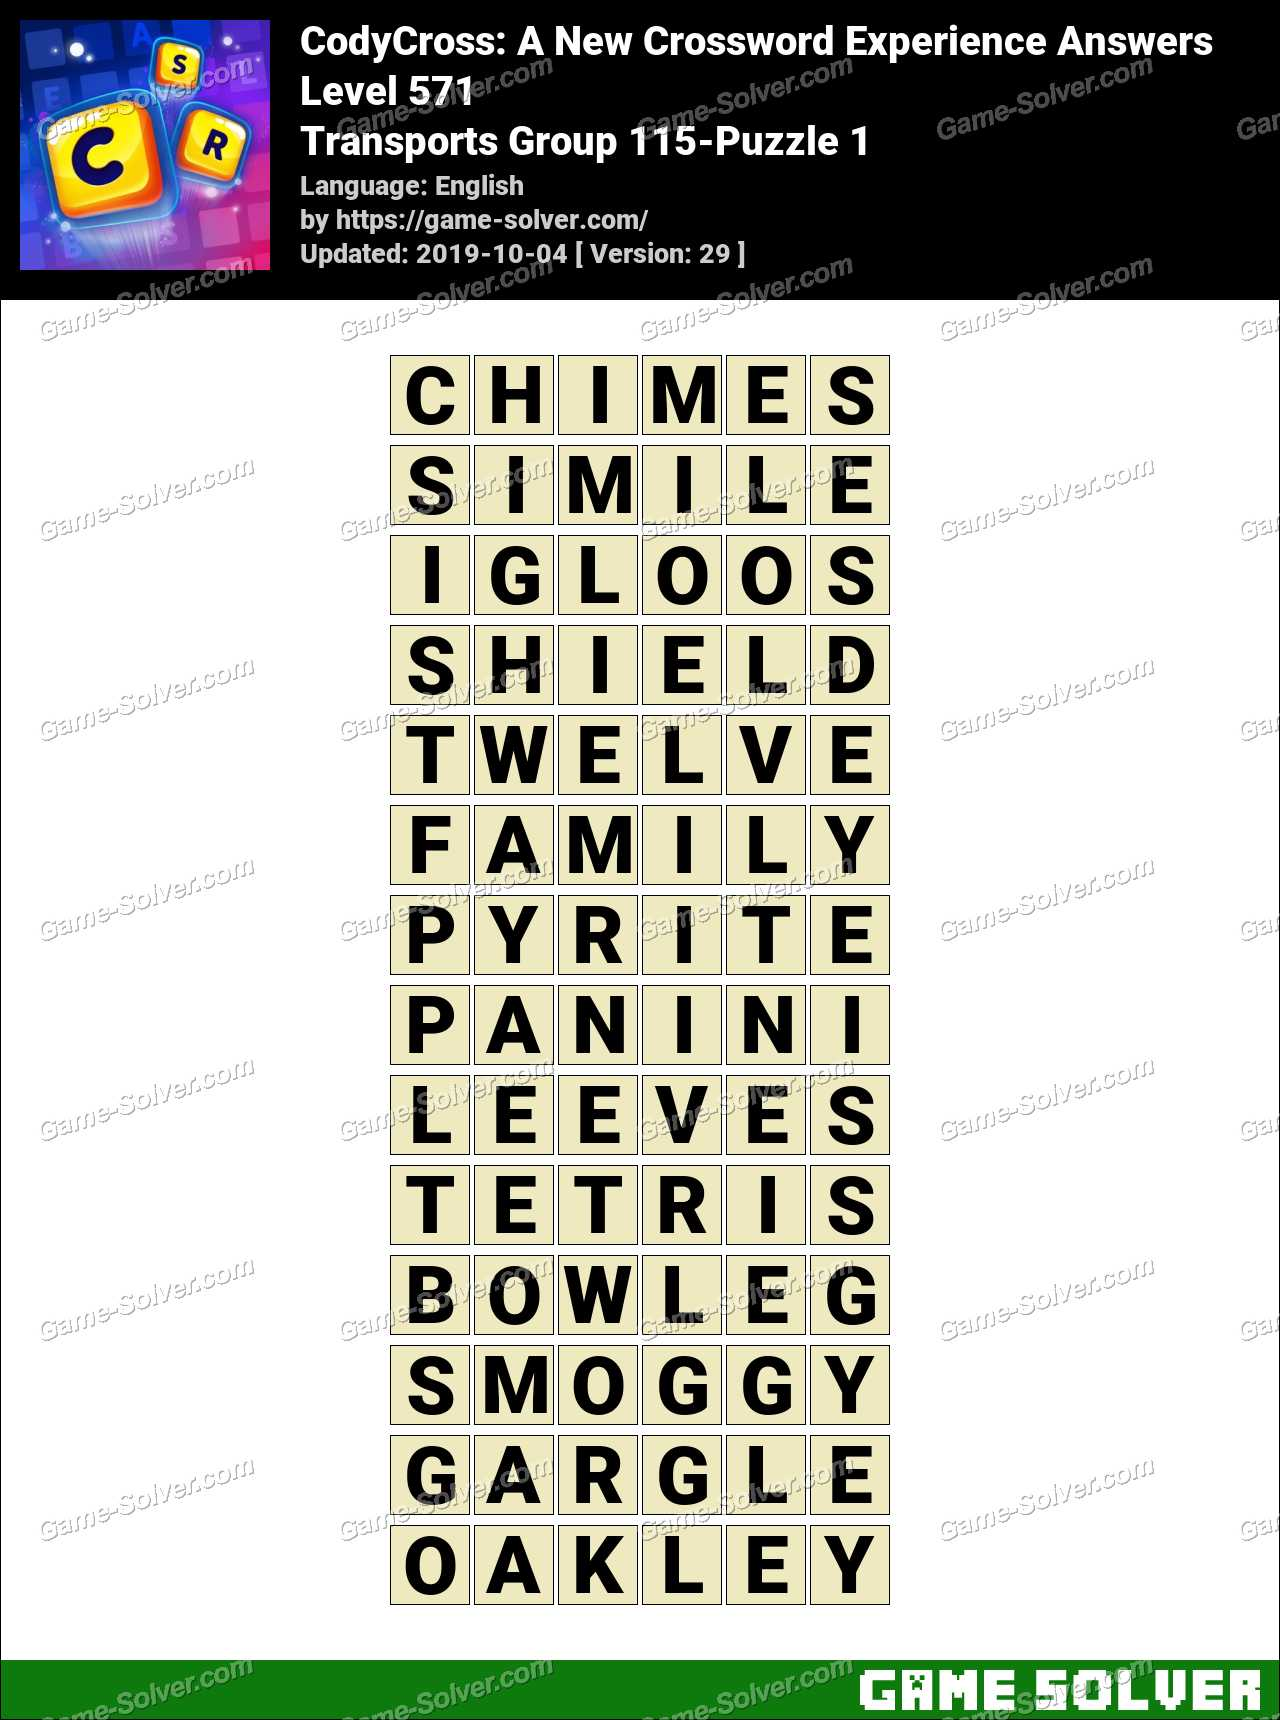 CodyCross Transports Group 115-Puzzle 1 Answers